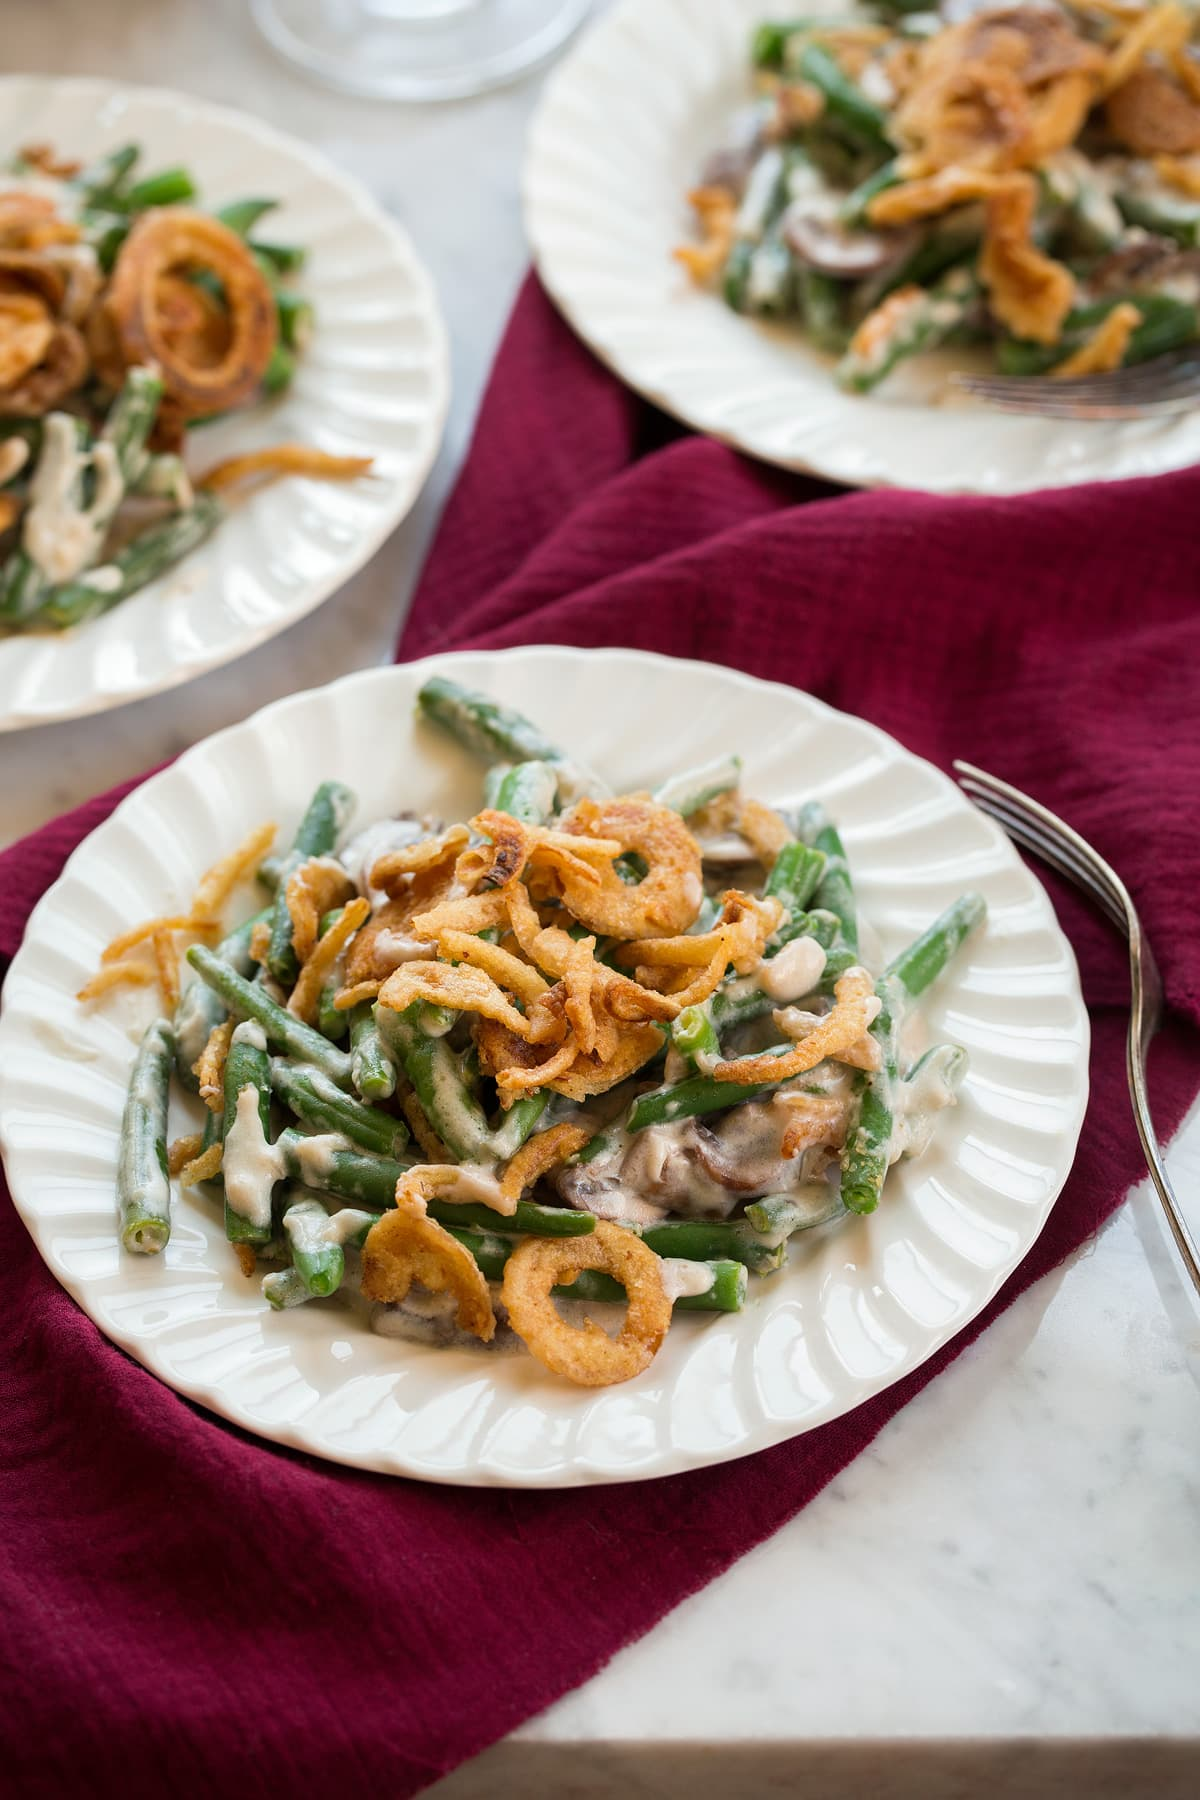 Three individual servings of Green Bean Casserole on white scalloped salad plates.